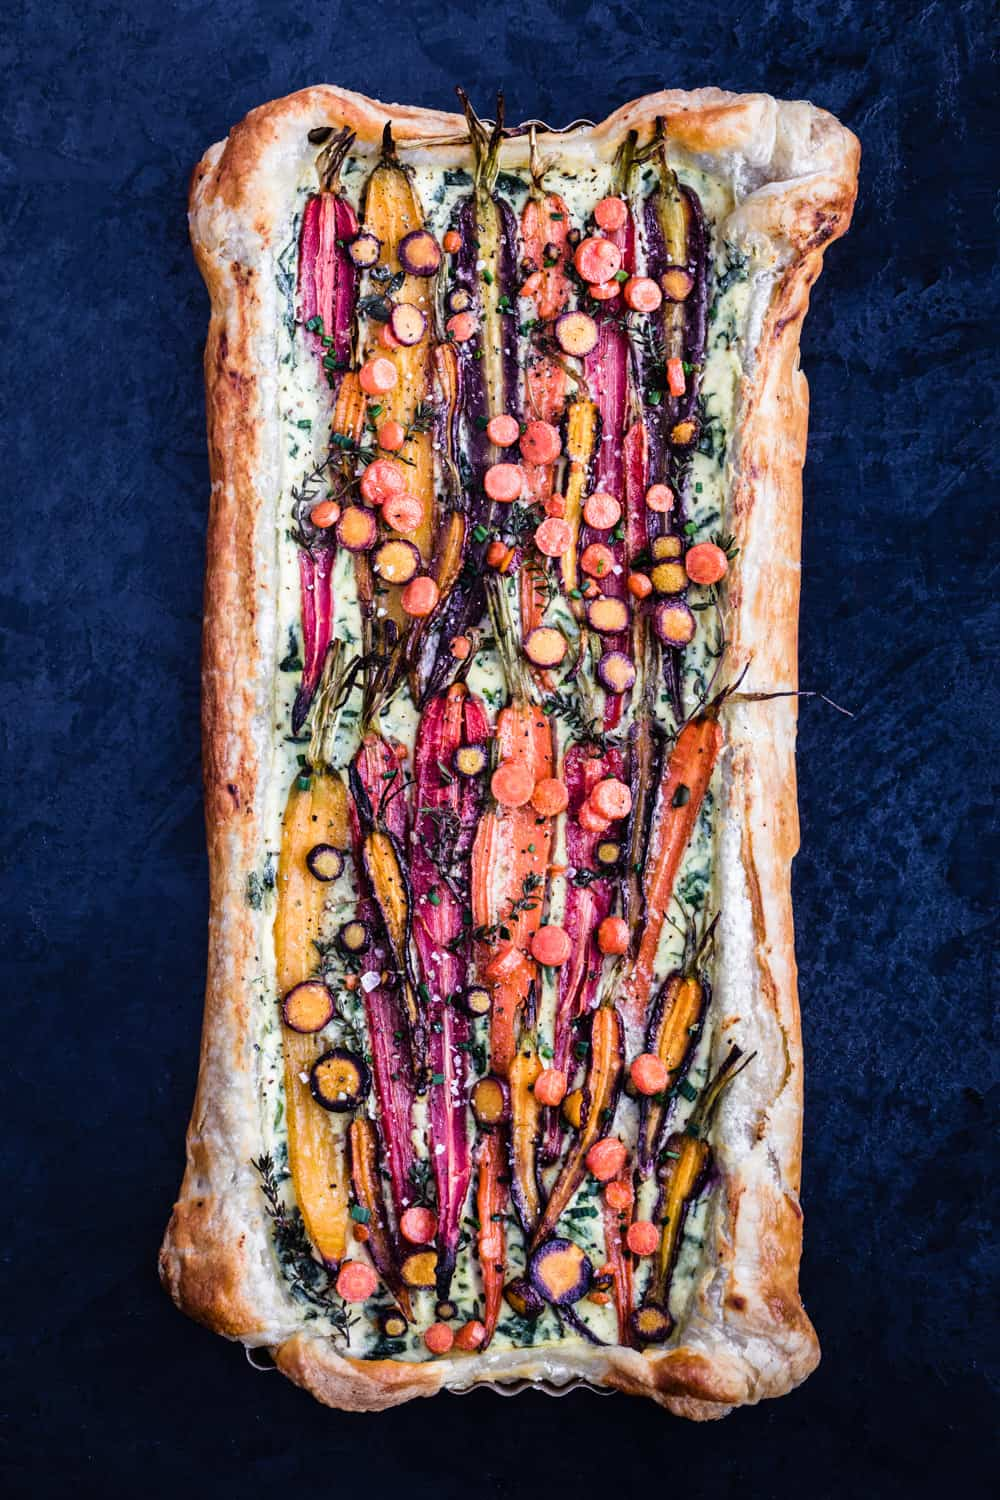 Colorful carrot tart, view from top